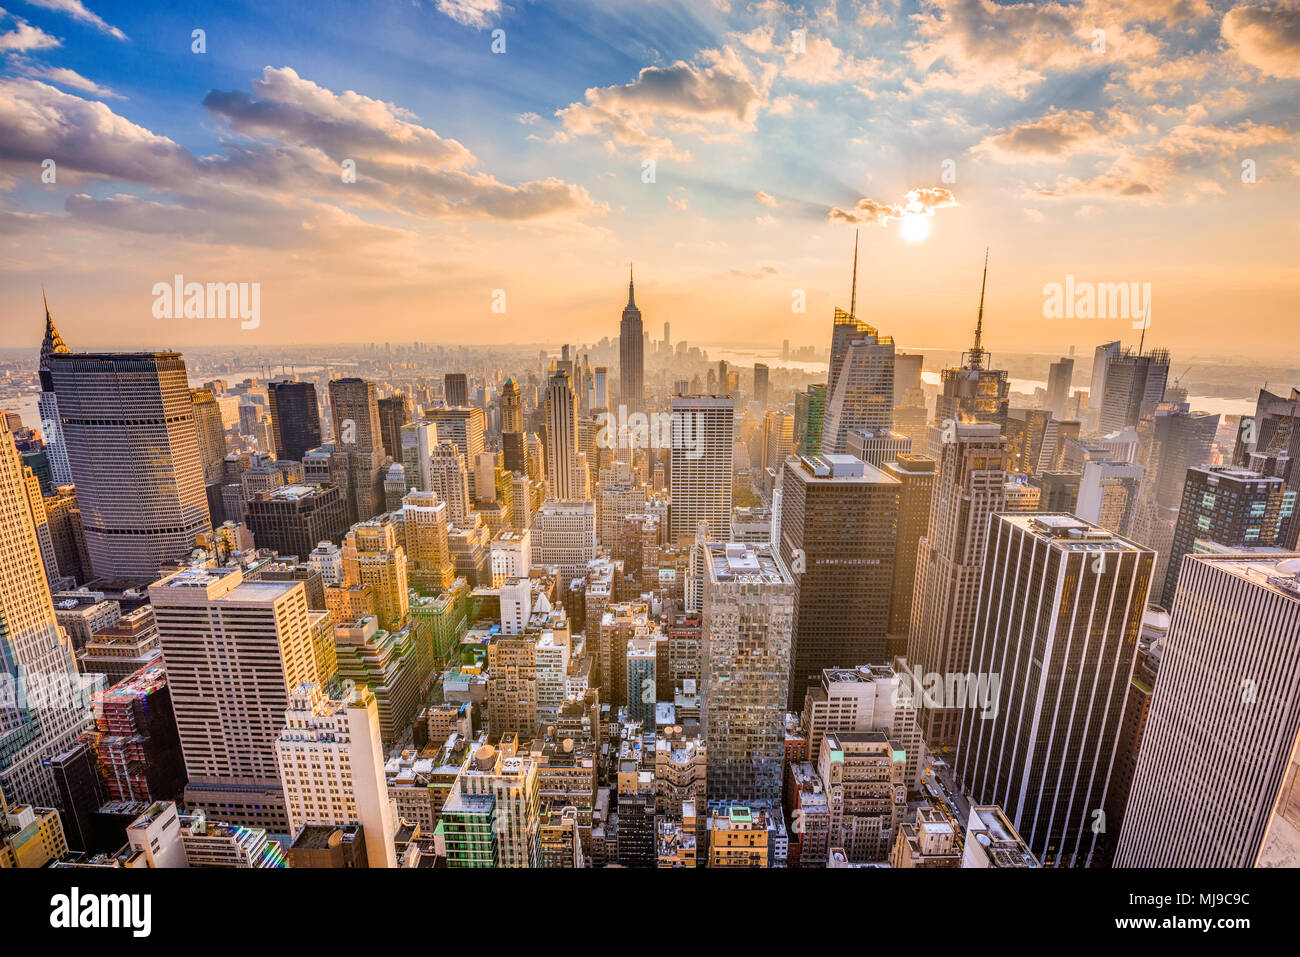 New York, New York, USA midtown Manhattan skyline. - Stock Image